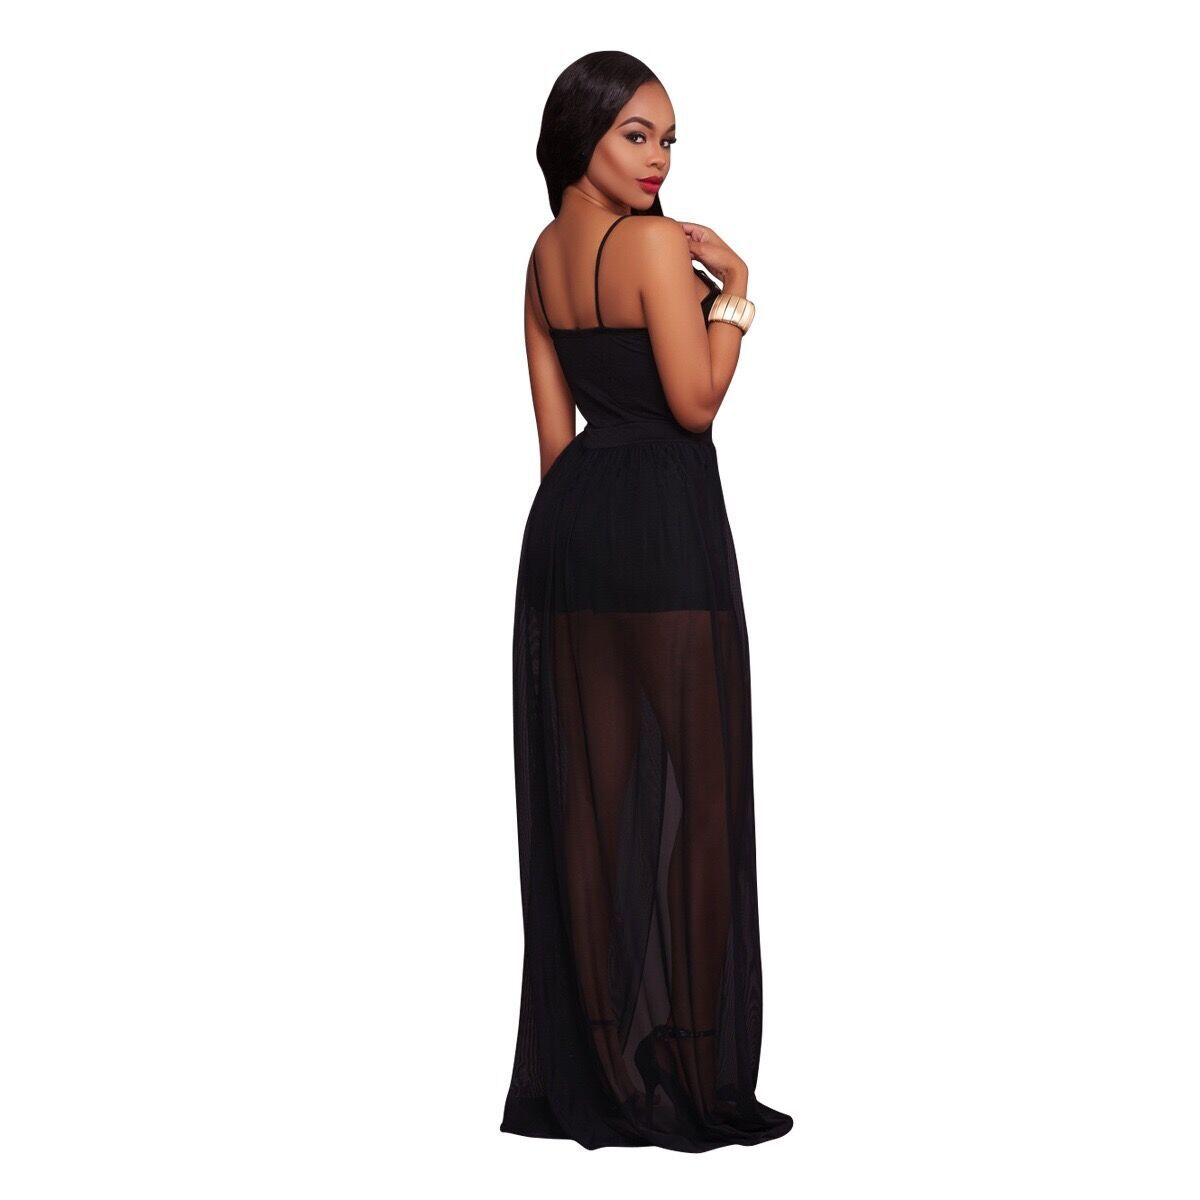 Elegant Jumpsuit Limited Enteritos Mujer 2017 New Sexy Pants European Evening Harness Cousal Jumpsuit Deep V Bodysuits Piece